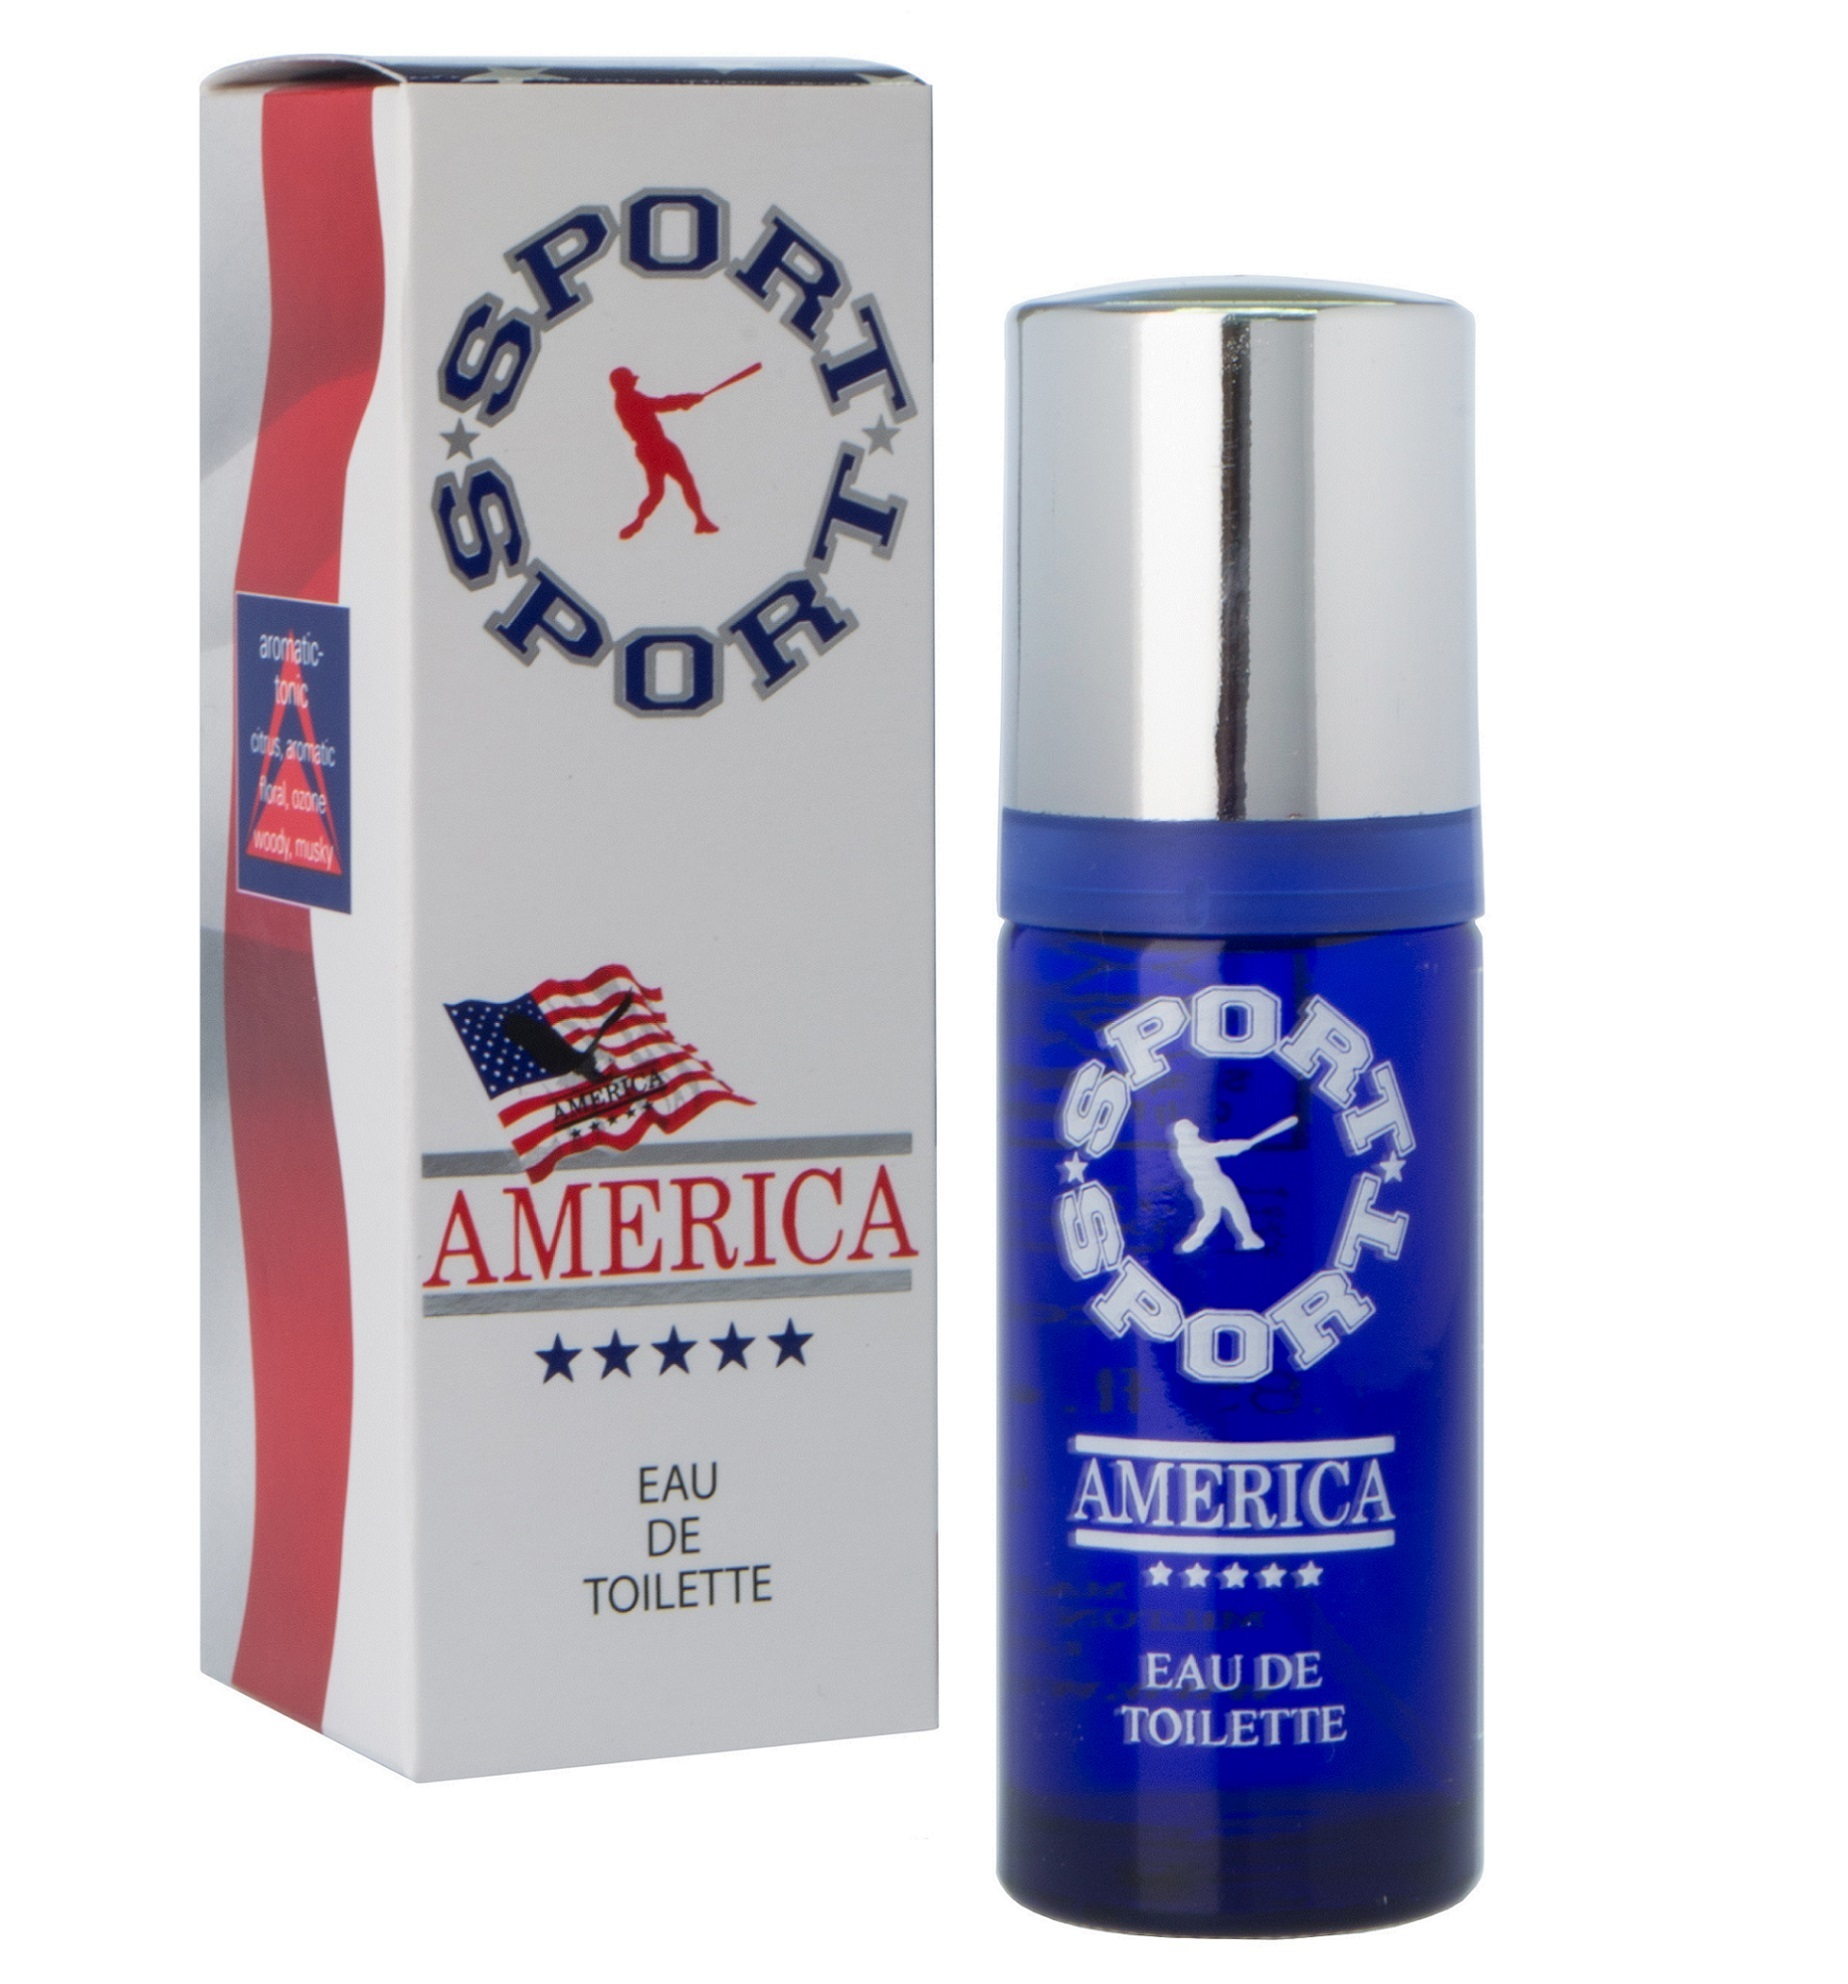 America Sport Eau De Toilette 55ml for Men product preview, discount at cheapest price